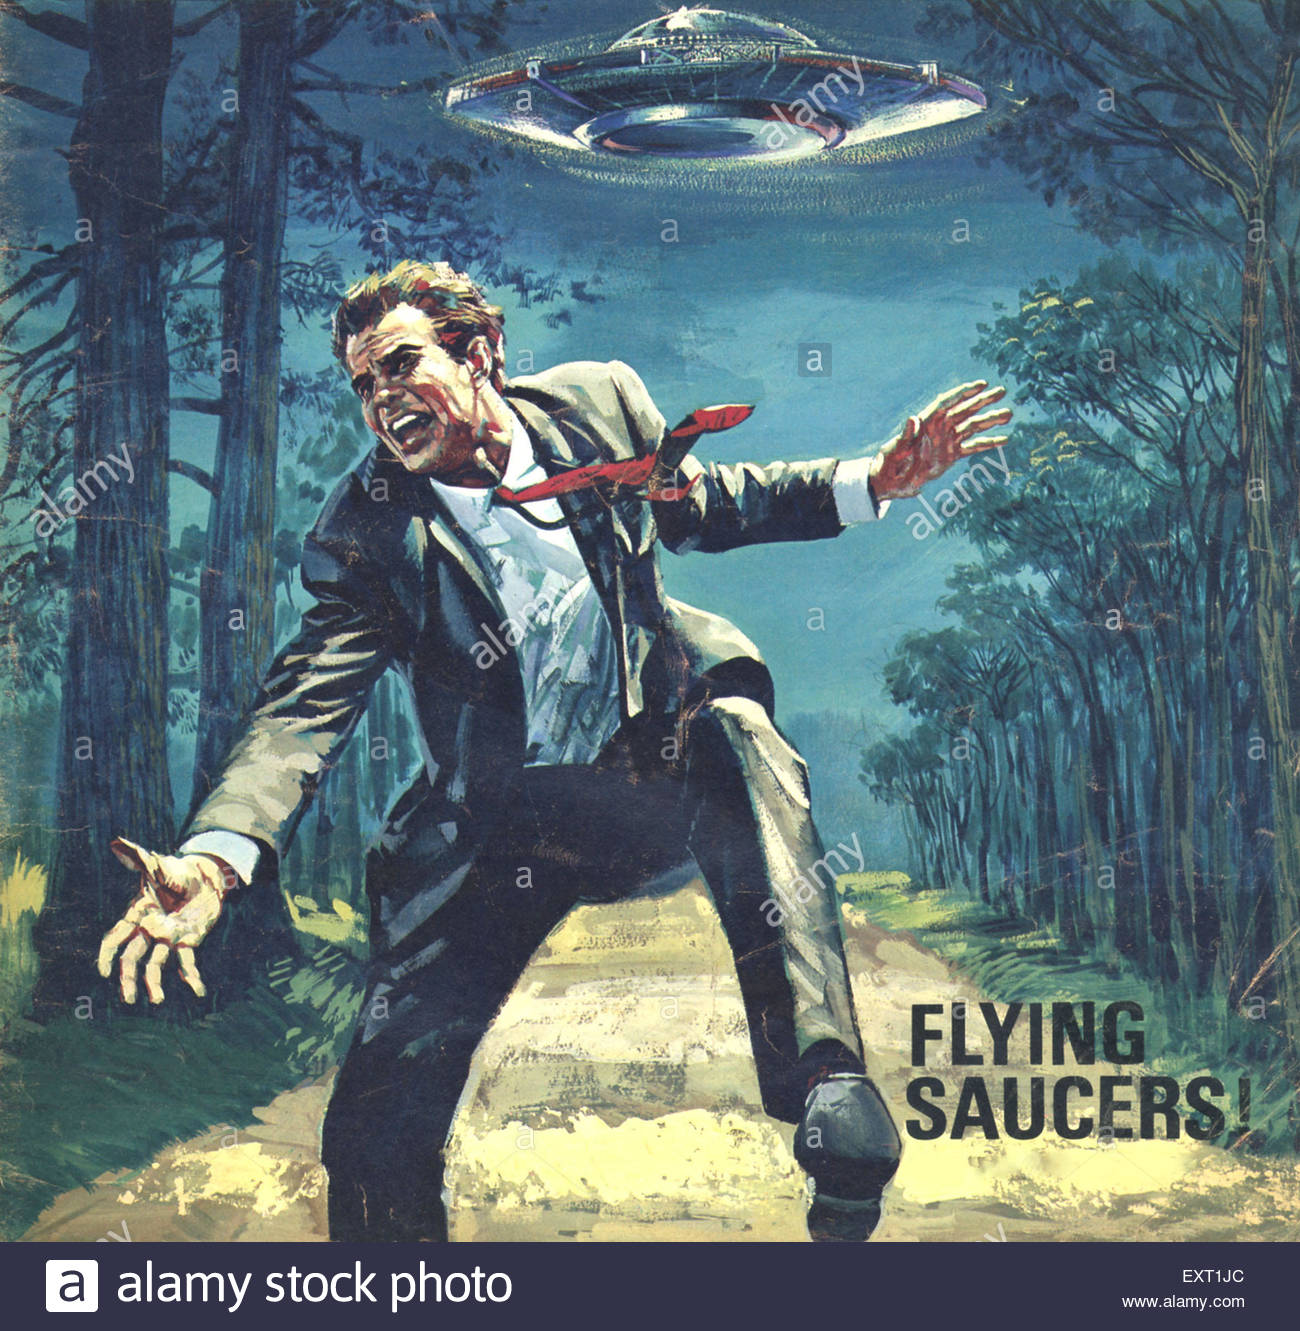 Photos Extra Running Man ( httpwww.alamy.comstock-photoflying-saucers.html ) 1960s-uk-flying-saucers-magazine-cover-detail-EXT1JC